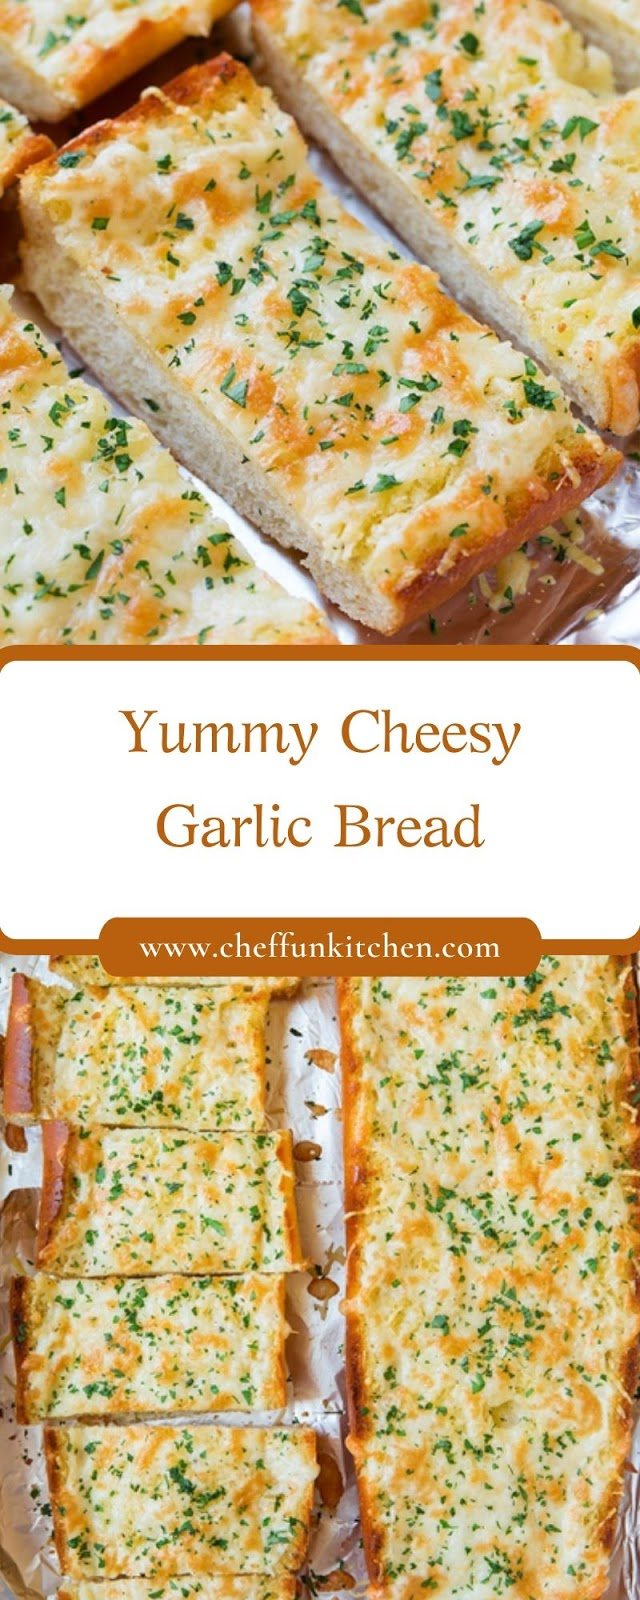 Yummy Cheesy Garlic Bread